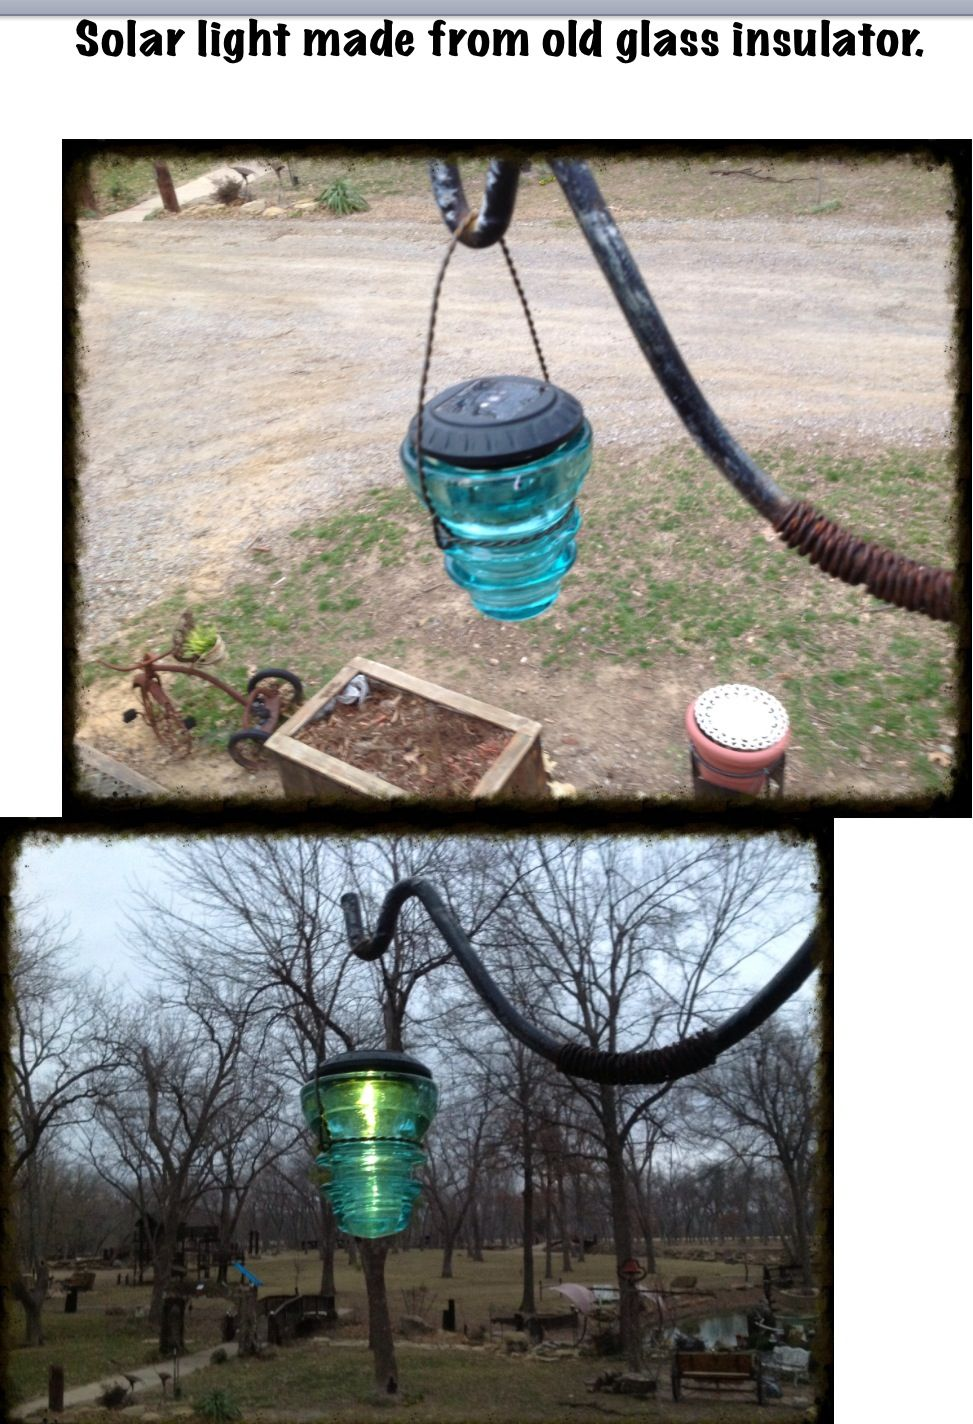 Solar light made from old glass insulator. Every idea I